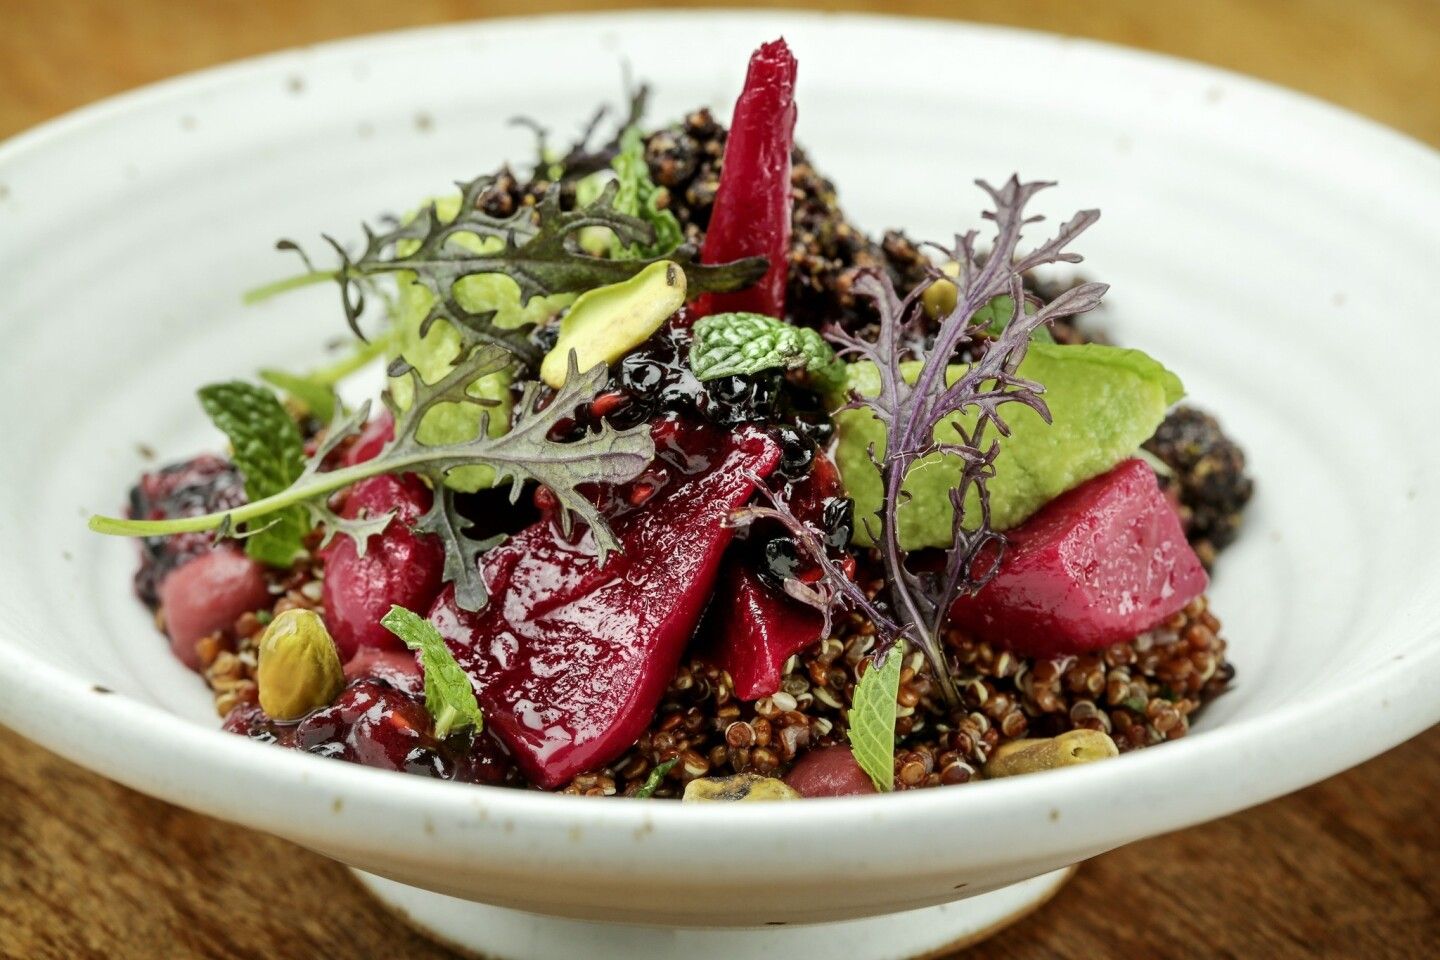 Roasted beets and purple quinoa in a rustic pottery bowl, topped with herbs, crisply roasted pistachios, chunks of buttery Reed avocado and slightly unripe mashed berries. Rustic Canyon's menu reaches higher under chef Jeremy Fox.